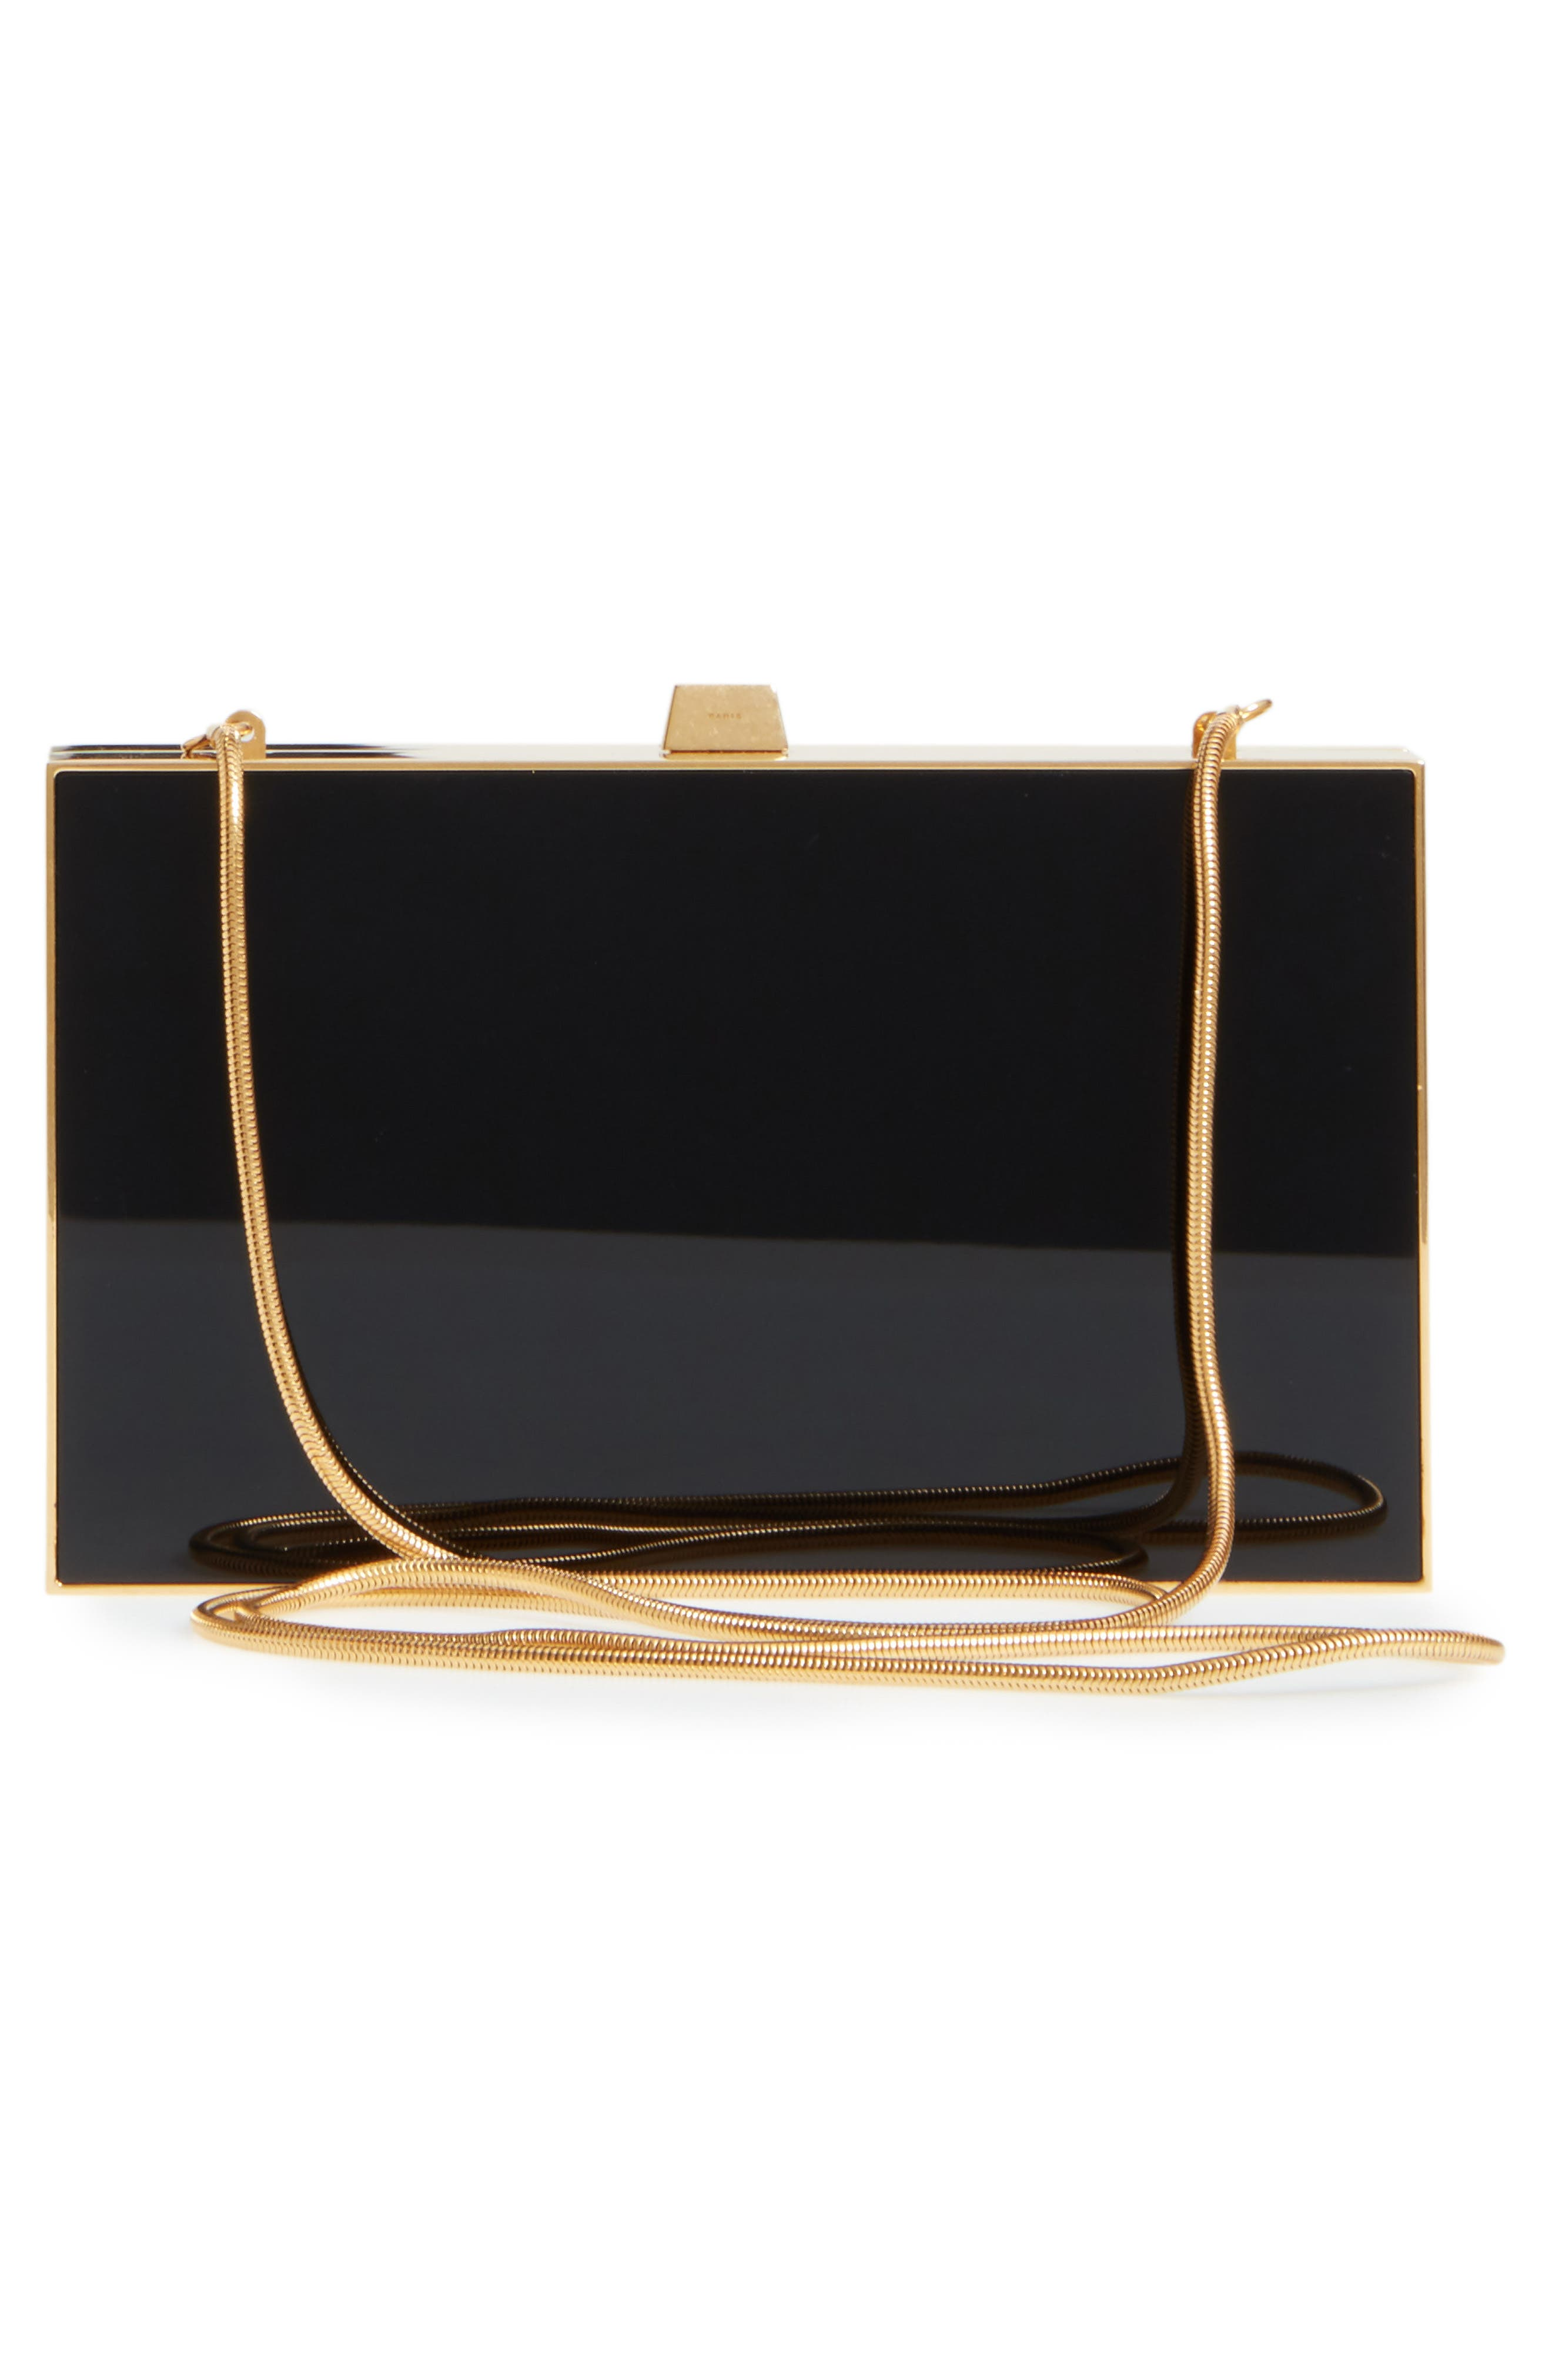 Monogram Tuxedo Box Clutch,                             Alternate thumbnail 3, color,                             NOIR/ GOLD